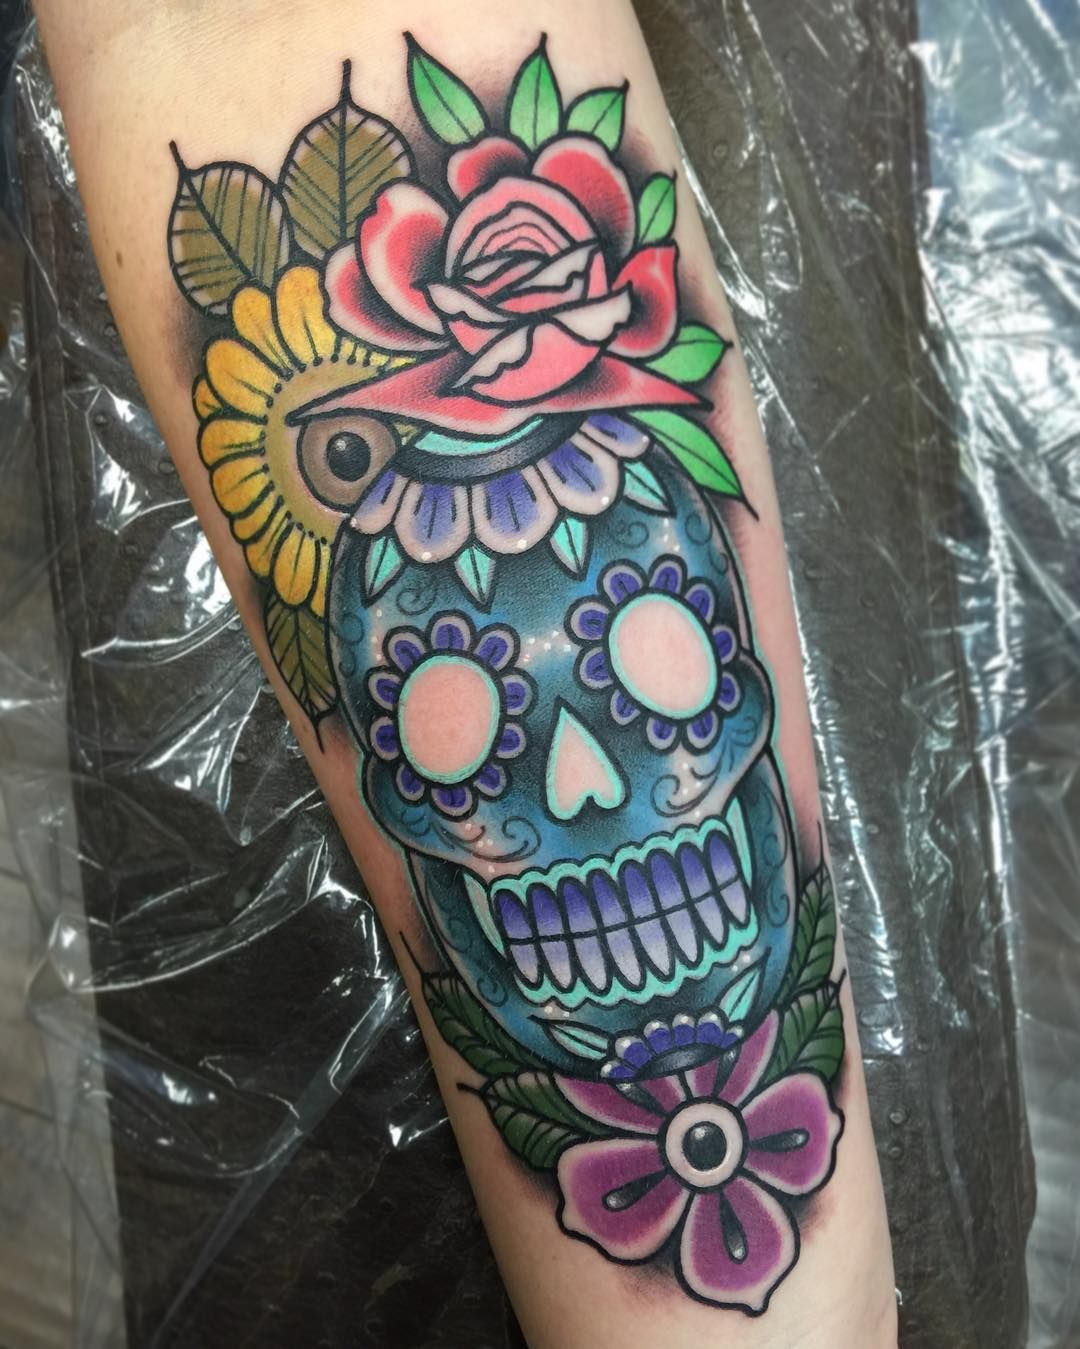 Awesome incredible floral tattoo designs for men the latest